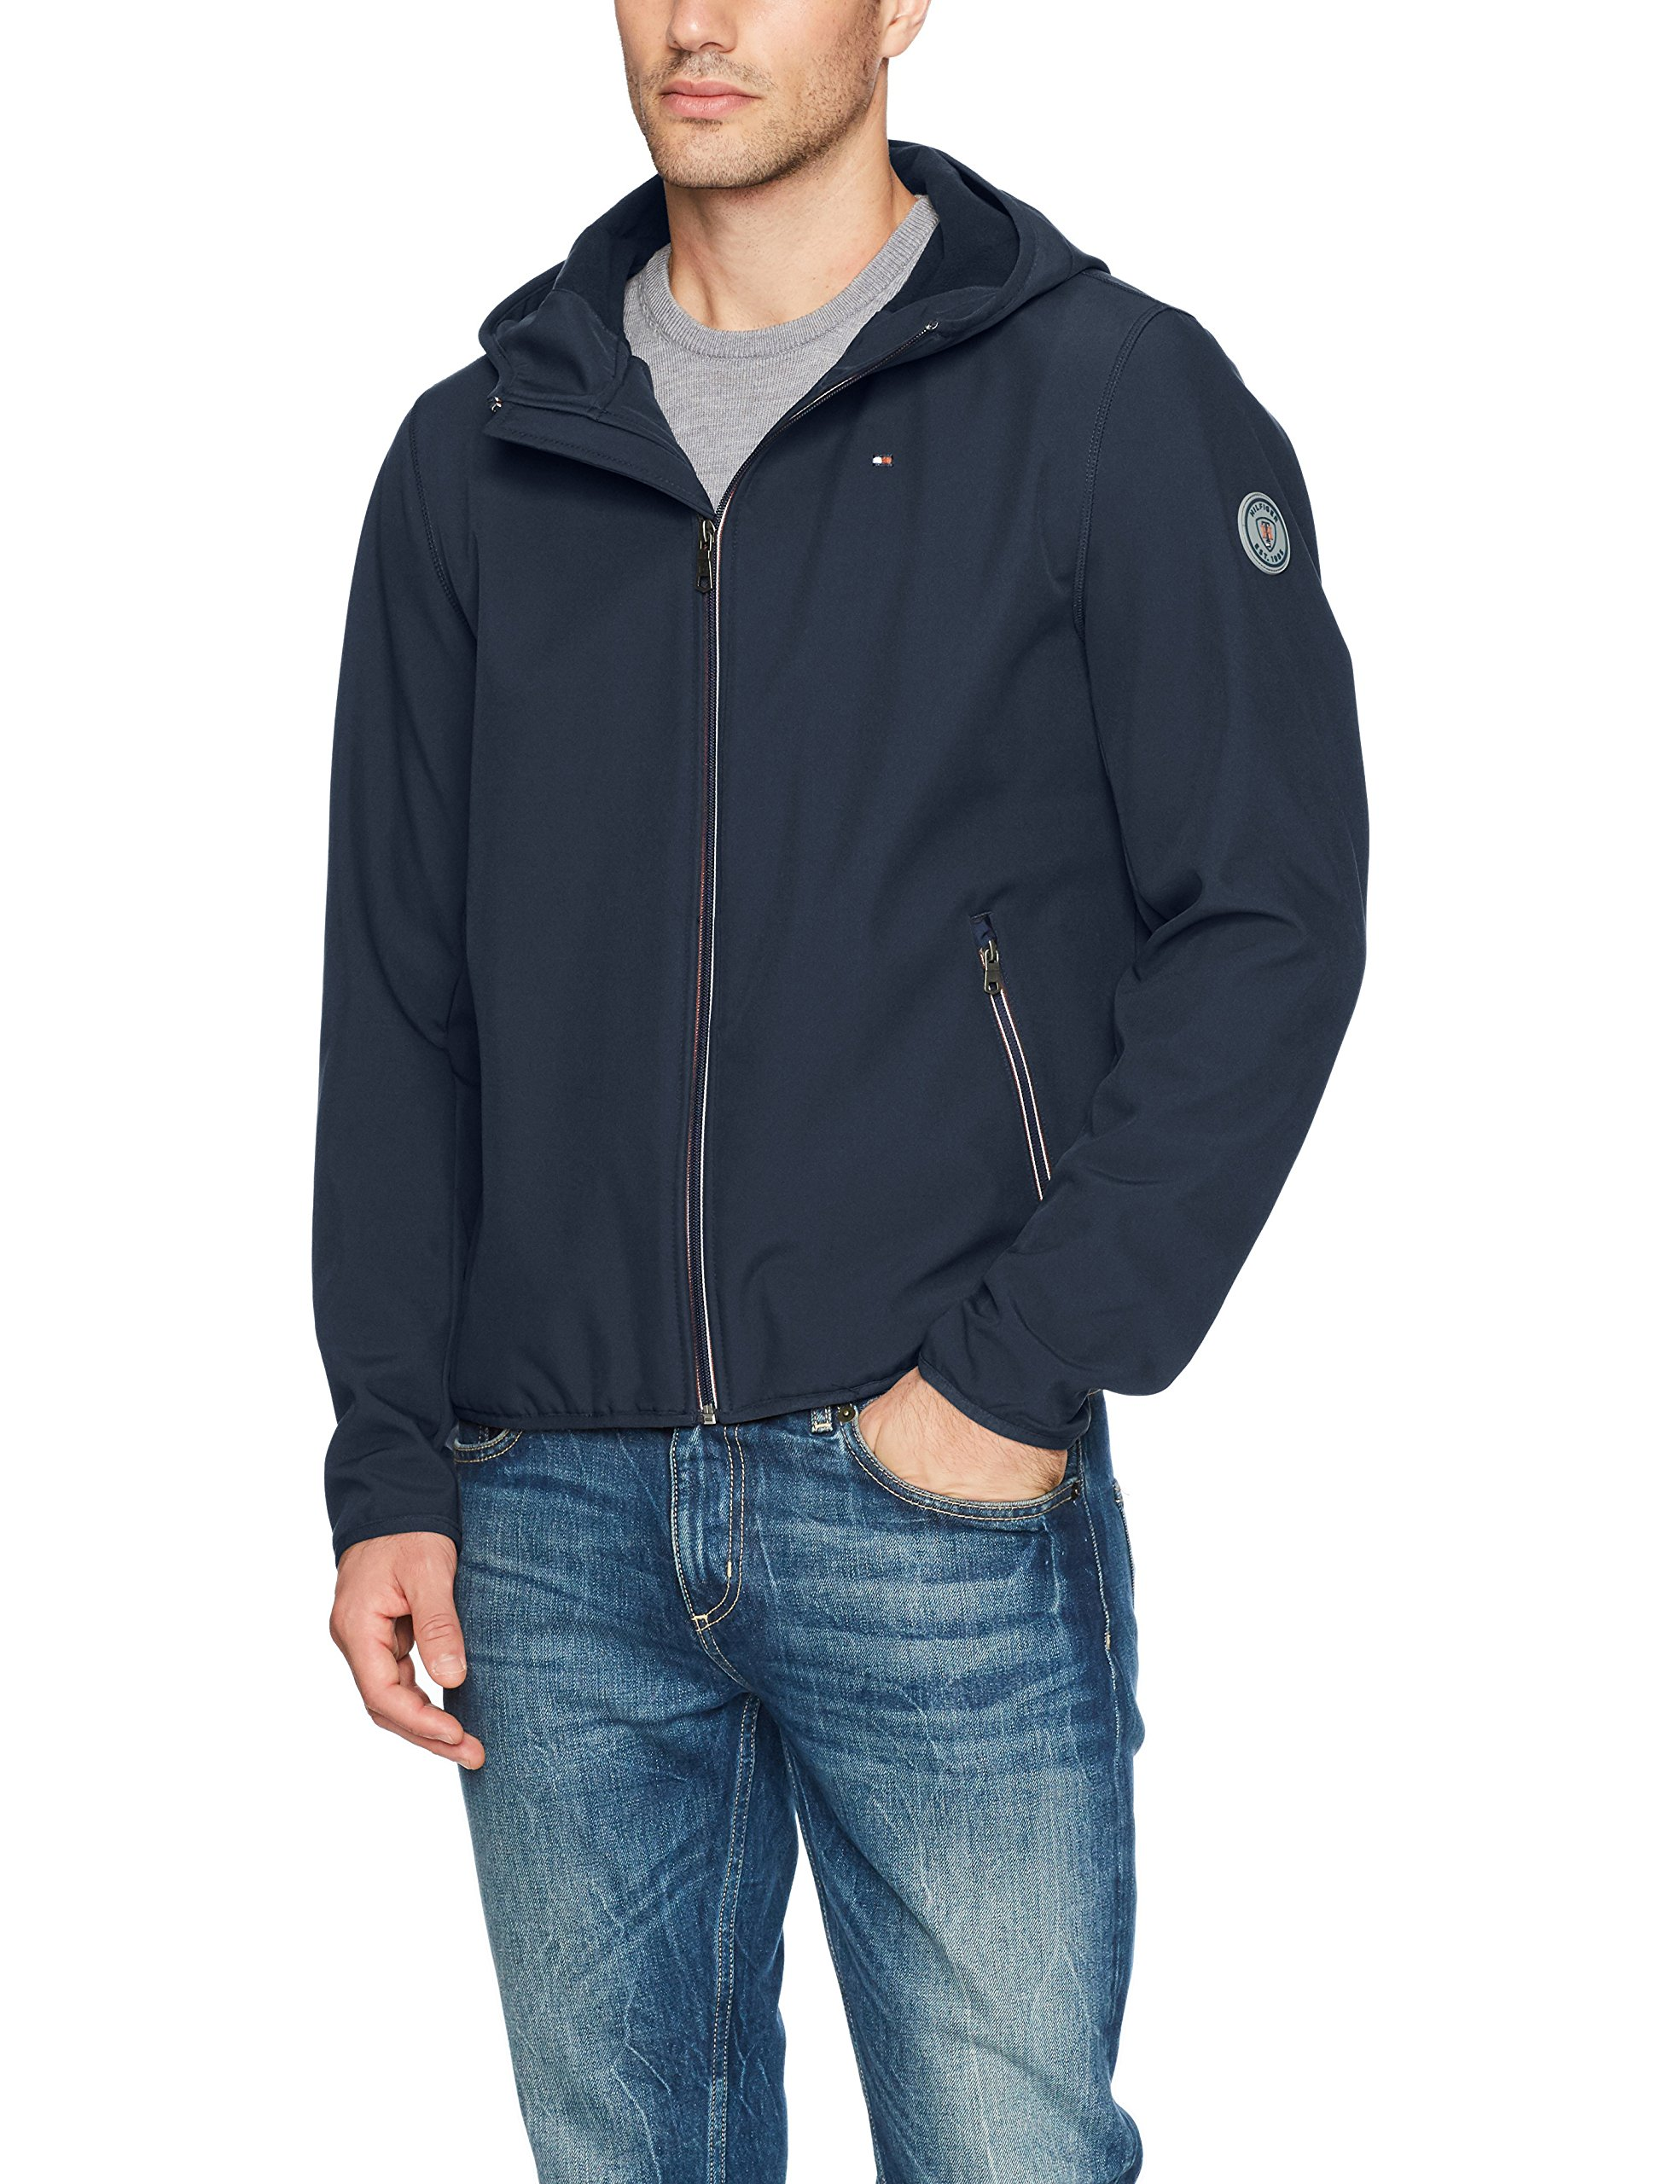 Tommy Hilfiger Men's Hooded Performance Soft Shell Jacket, Midnight, Medium by Tommy Hilfiger